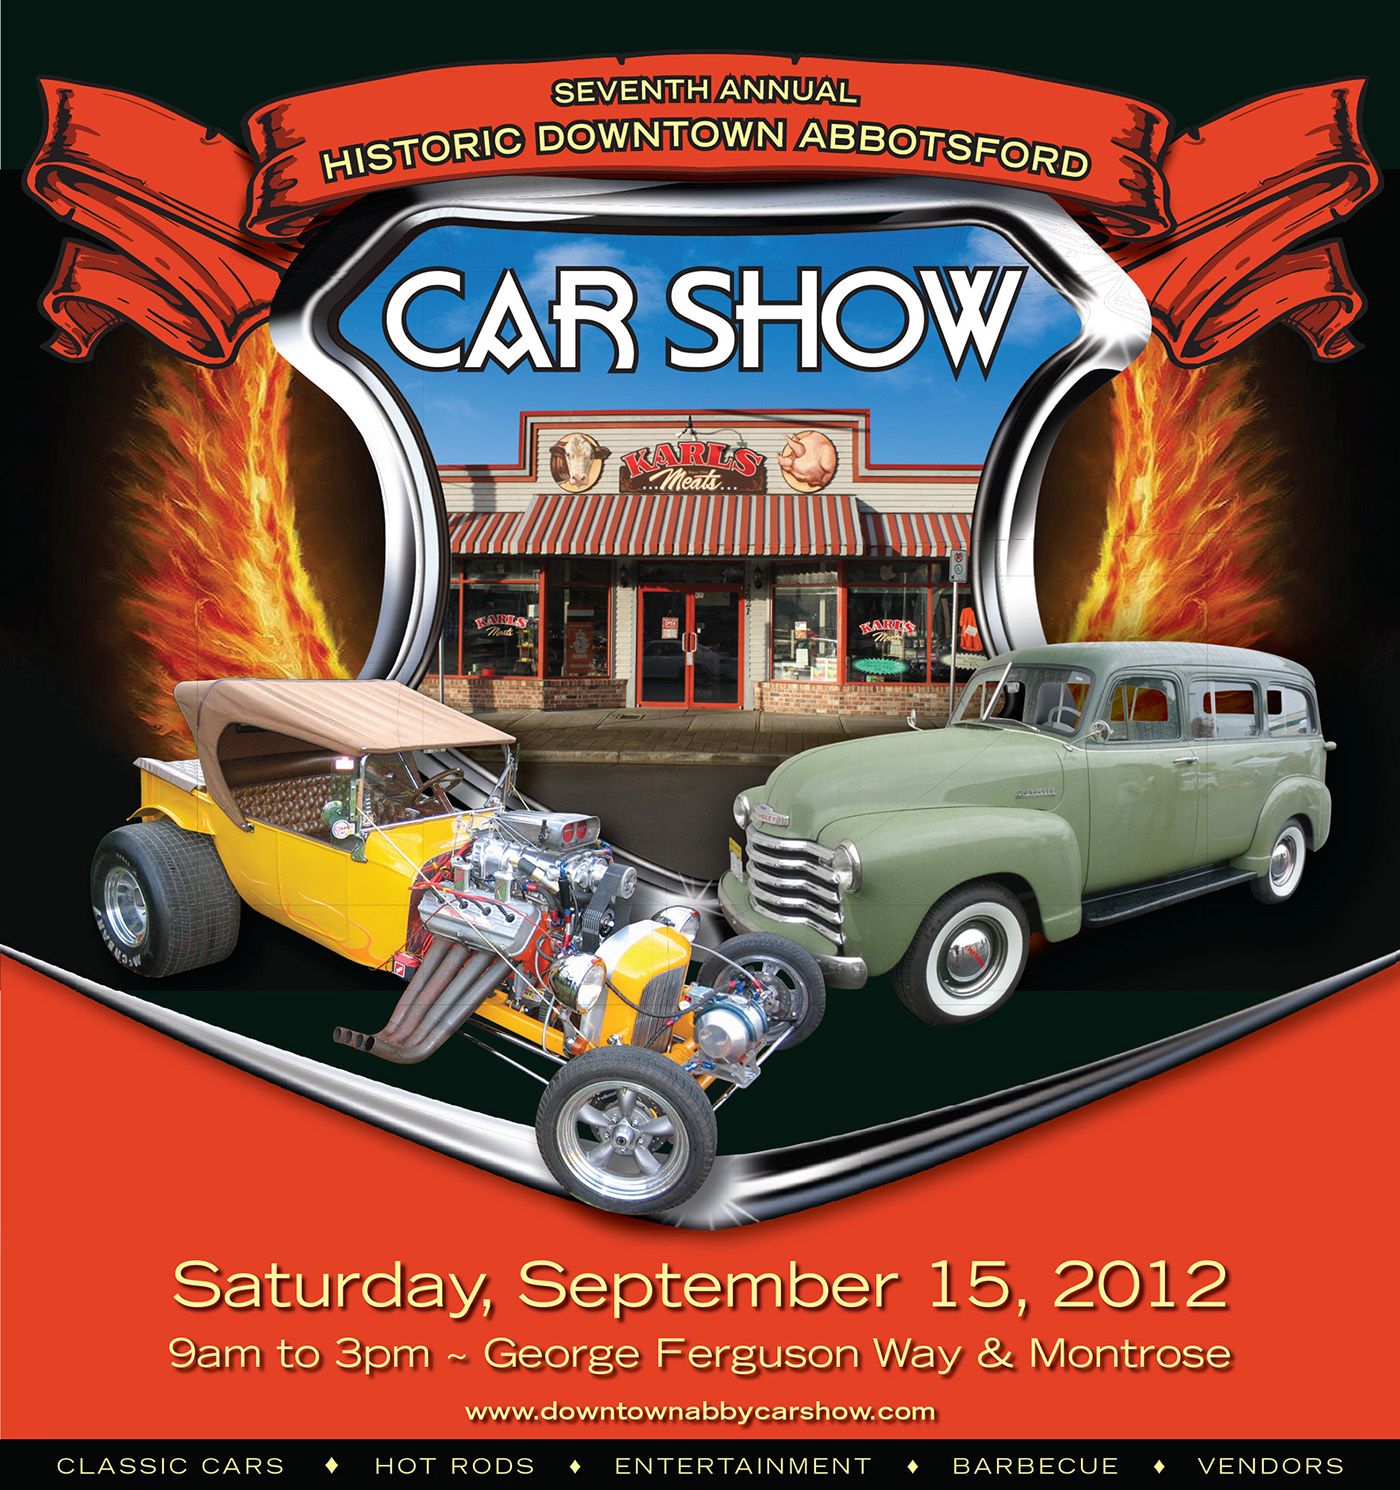 Downtown Abbotsford Car Show Posters On Behance - Car show downtown